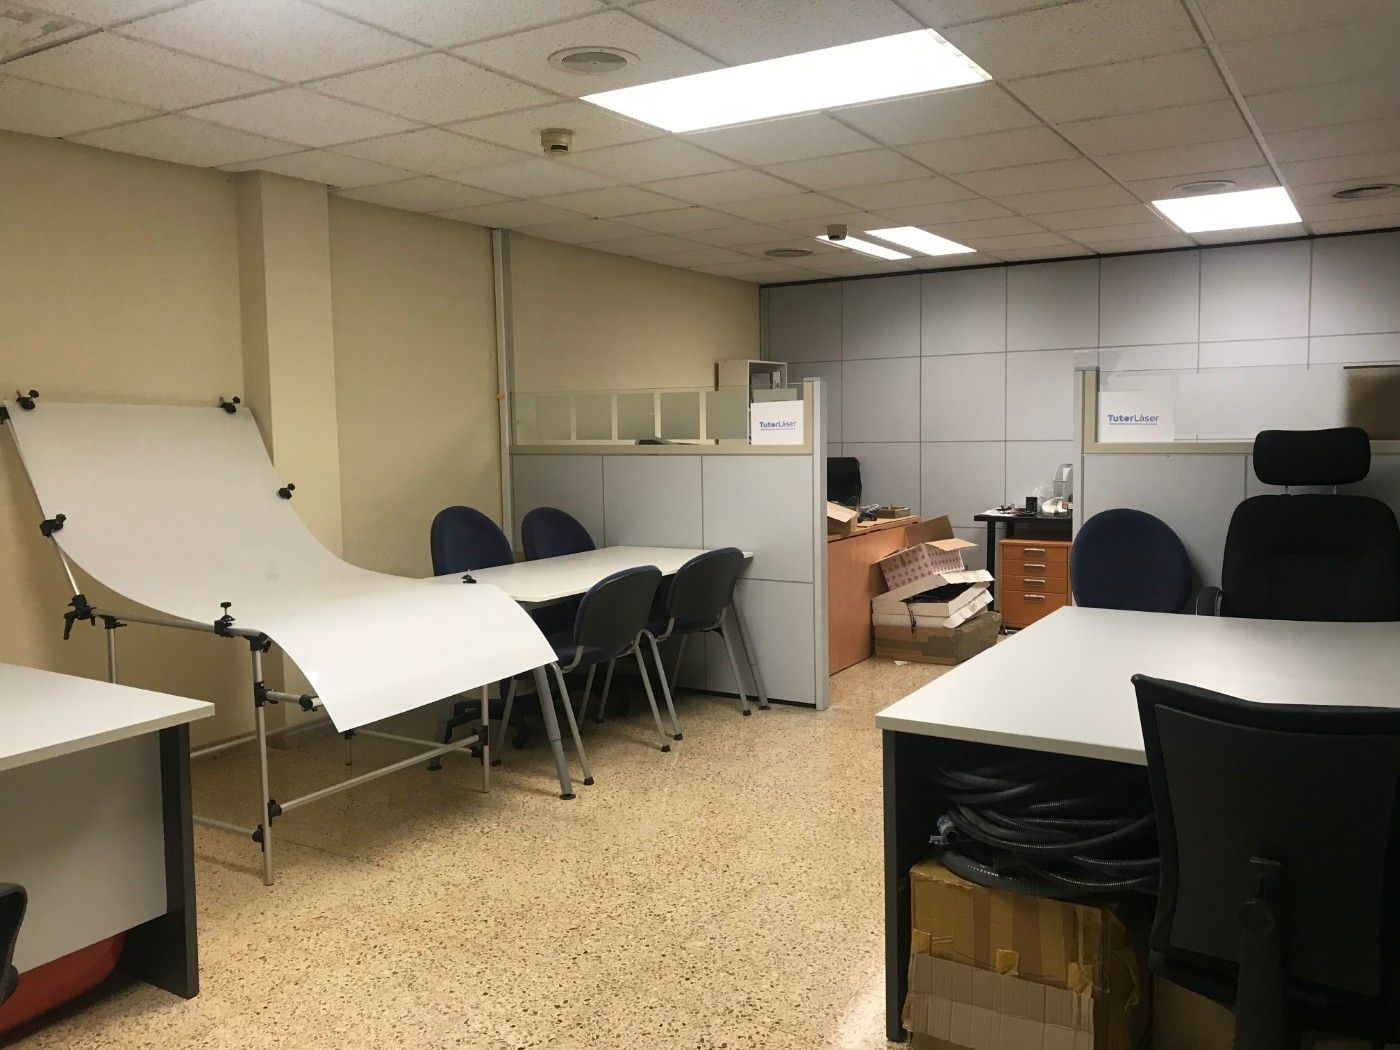 Office space in Carrer Bolivia